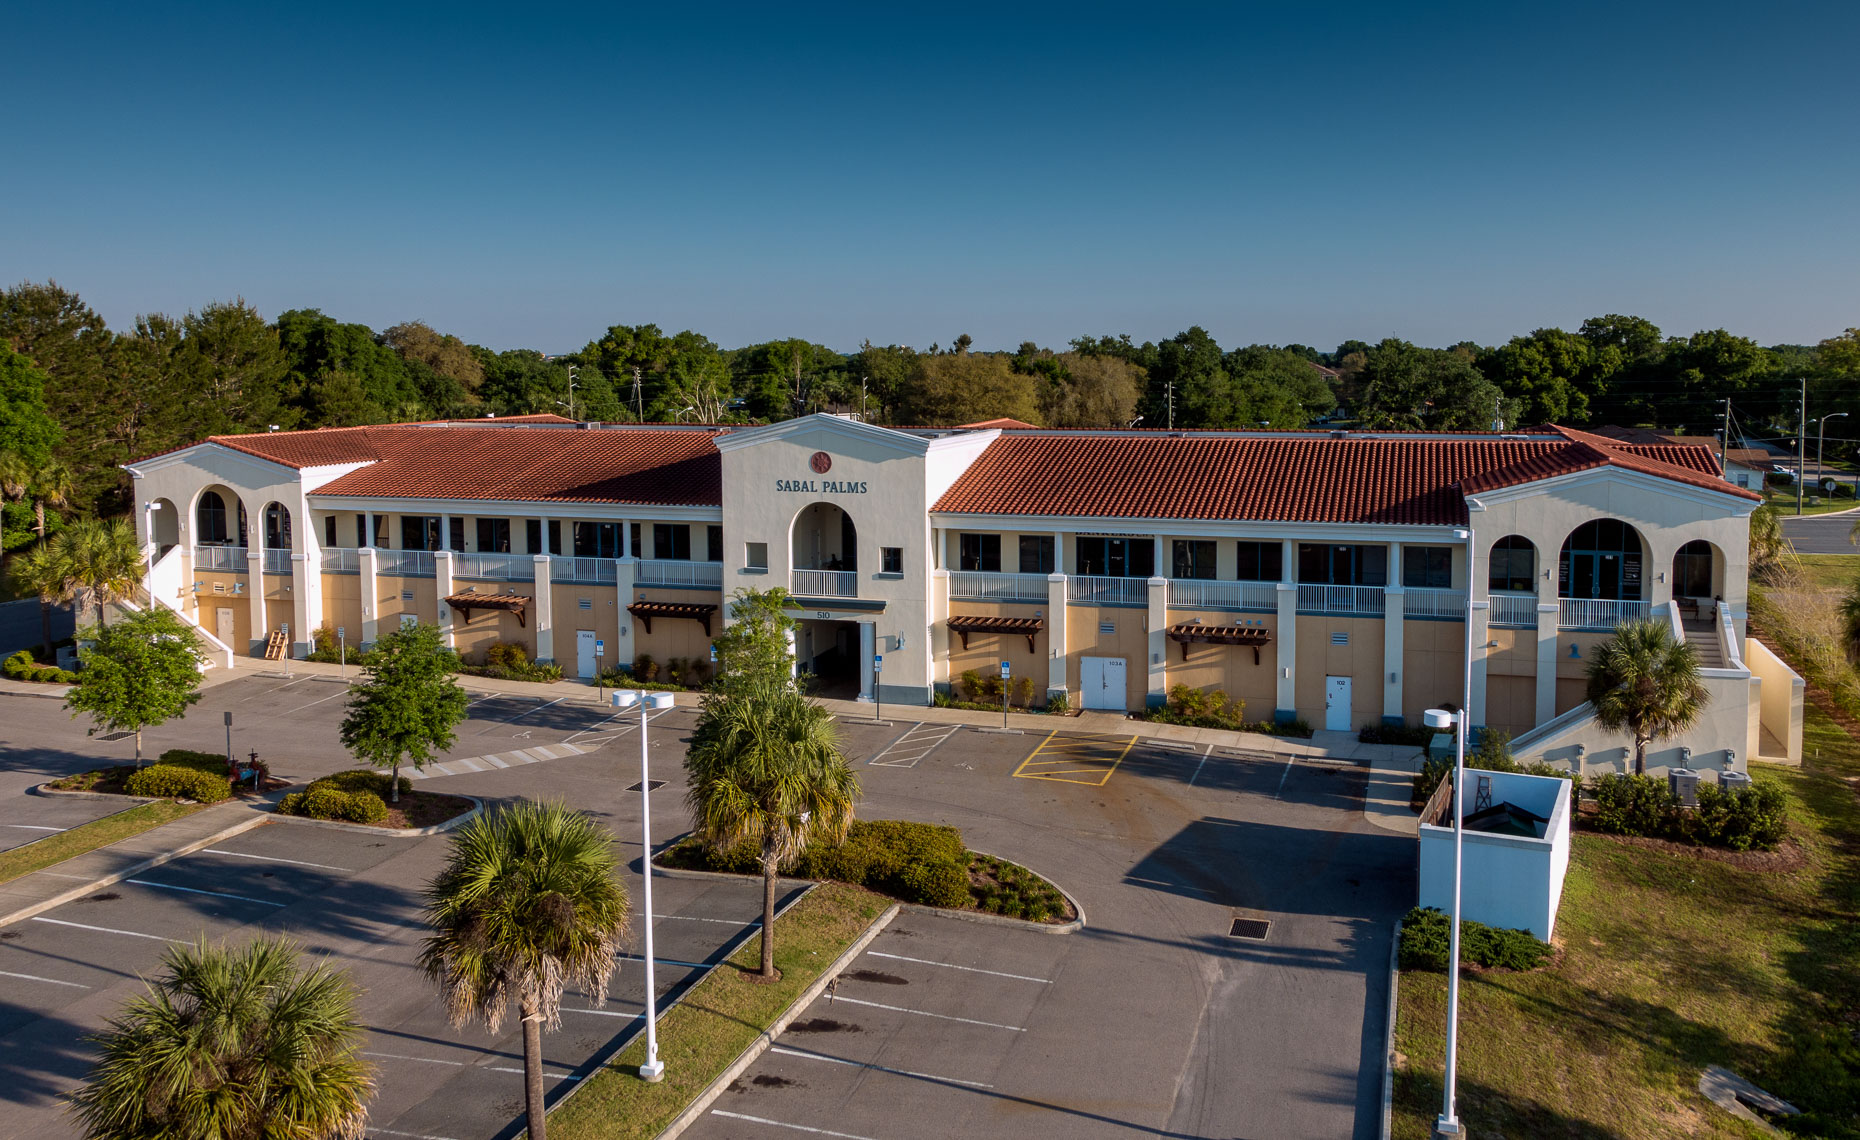 Aerial Office Building  - Mark Borosch Photography - The Villages, FL